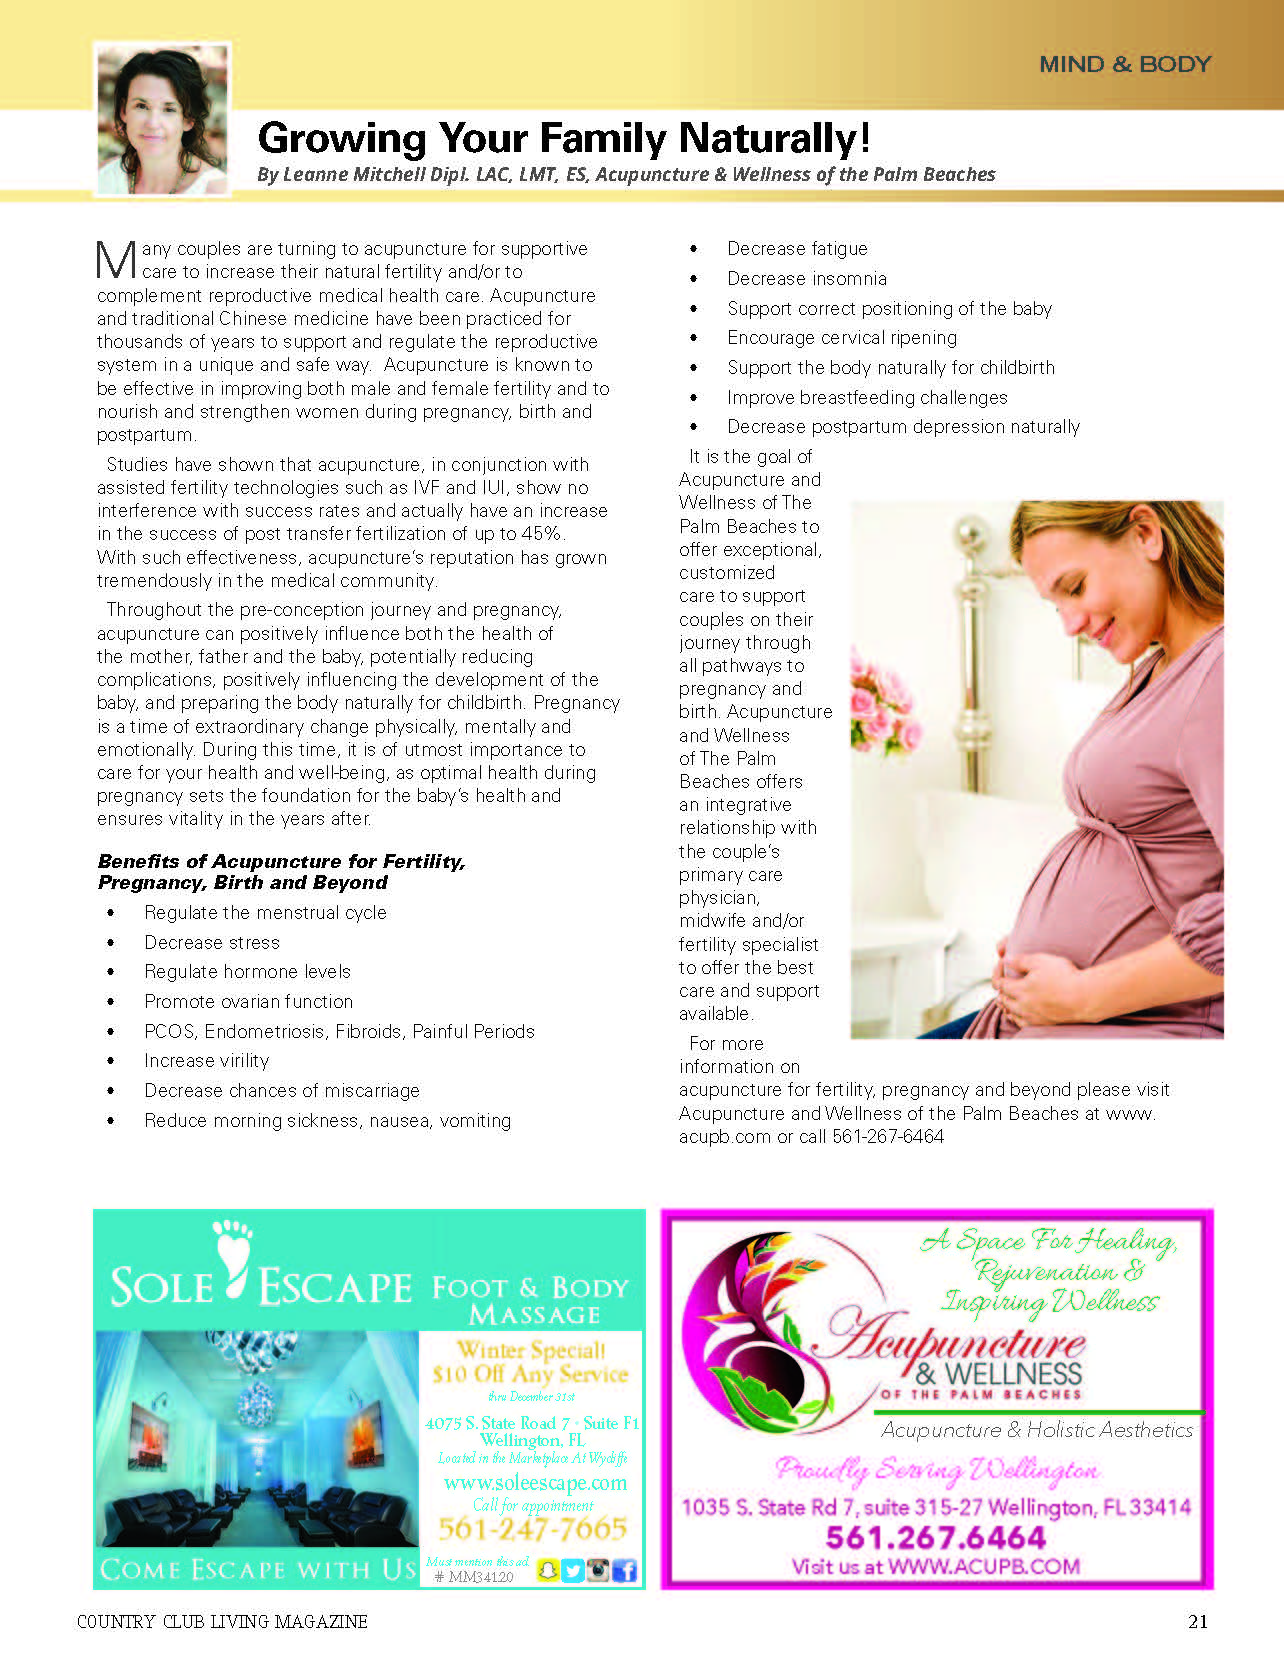 acupuncture and wellness of the palm beaches- growing your family naturally